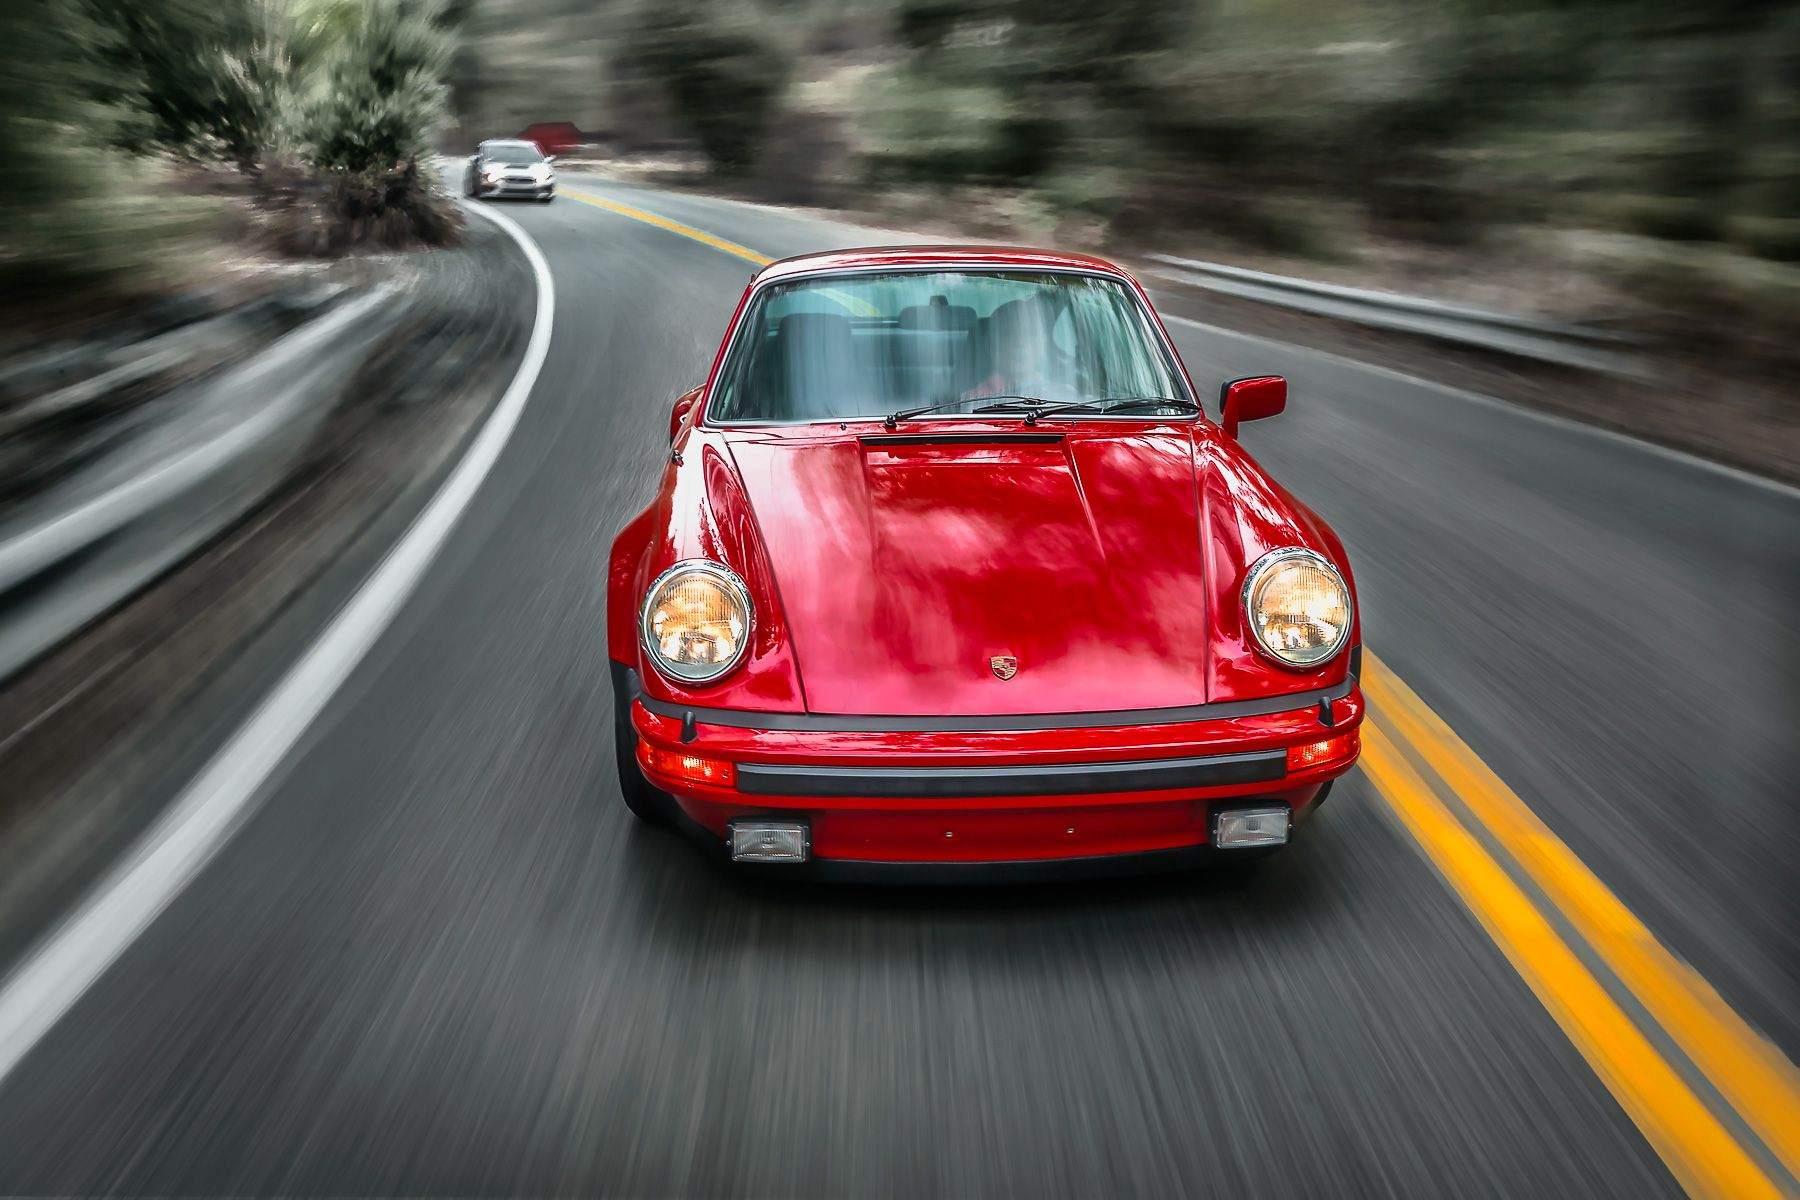 PORSCHE 930 TURBO-1395-edit art w layers-2.jpg